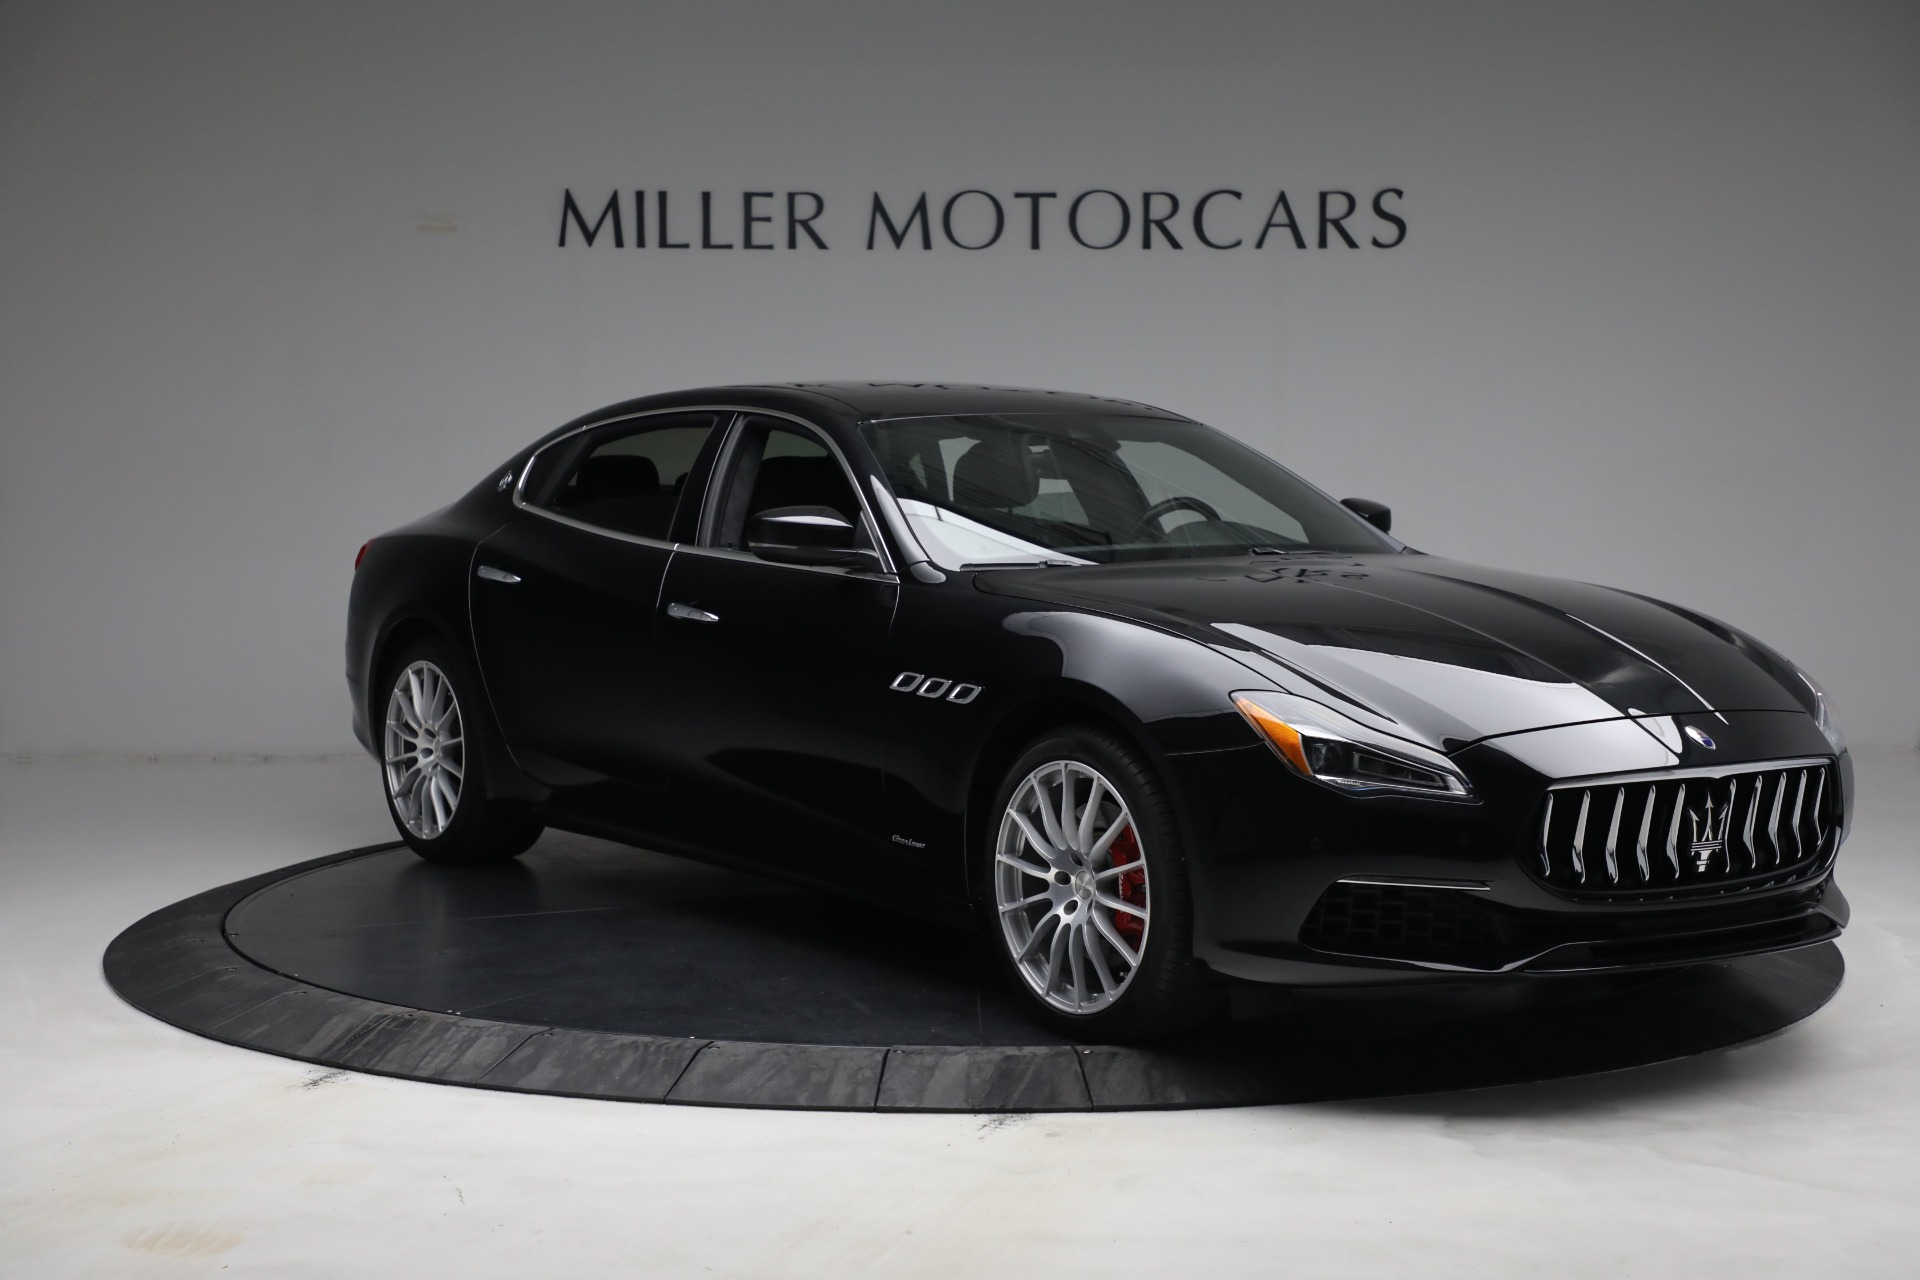 New 2019 Maserati Quattroporte S Q4 GranLusso For Sale In Greenwich, CT 2619_p11